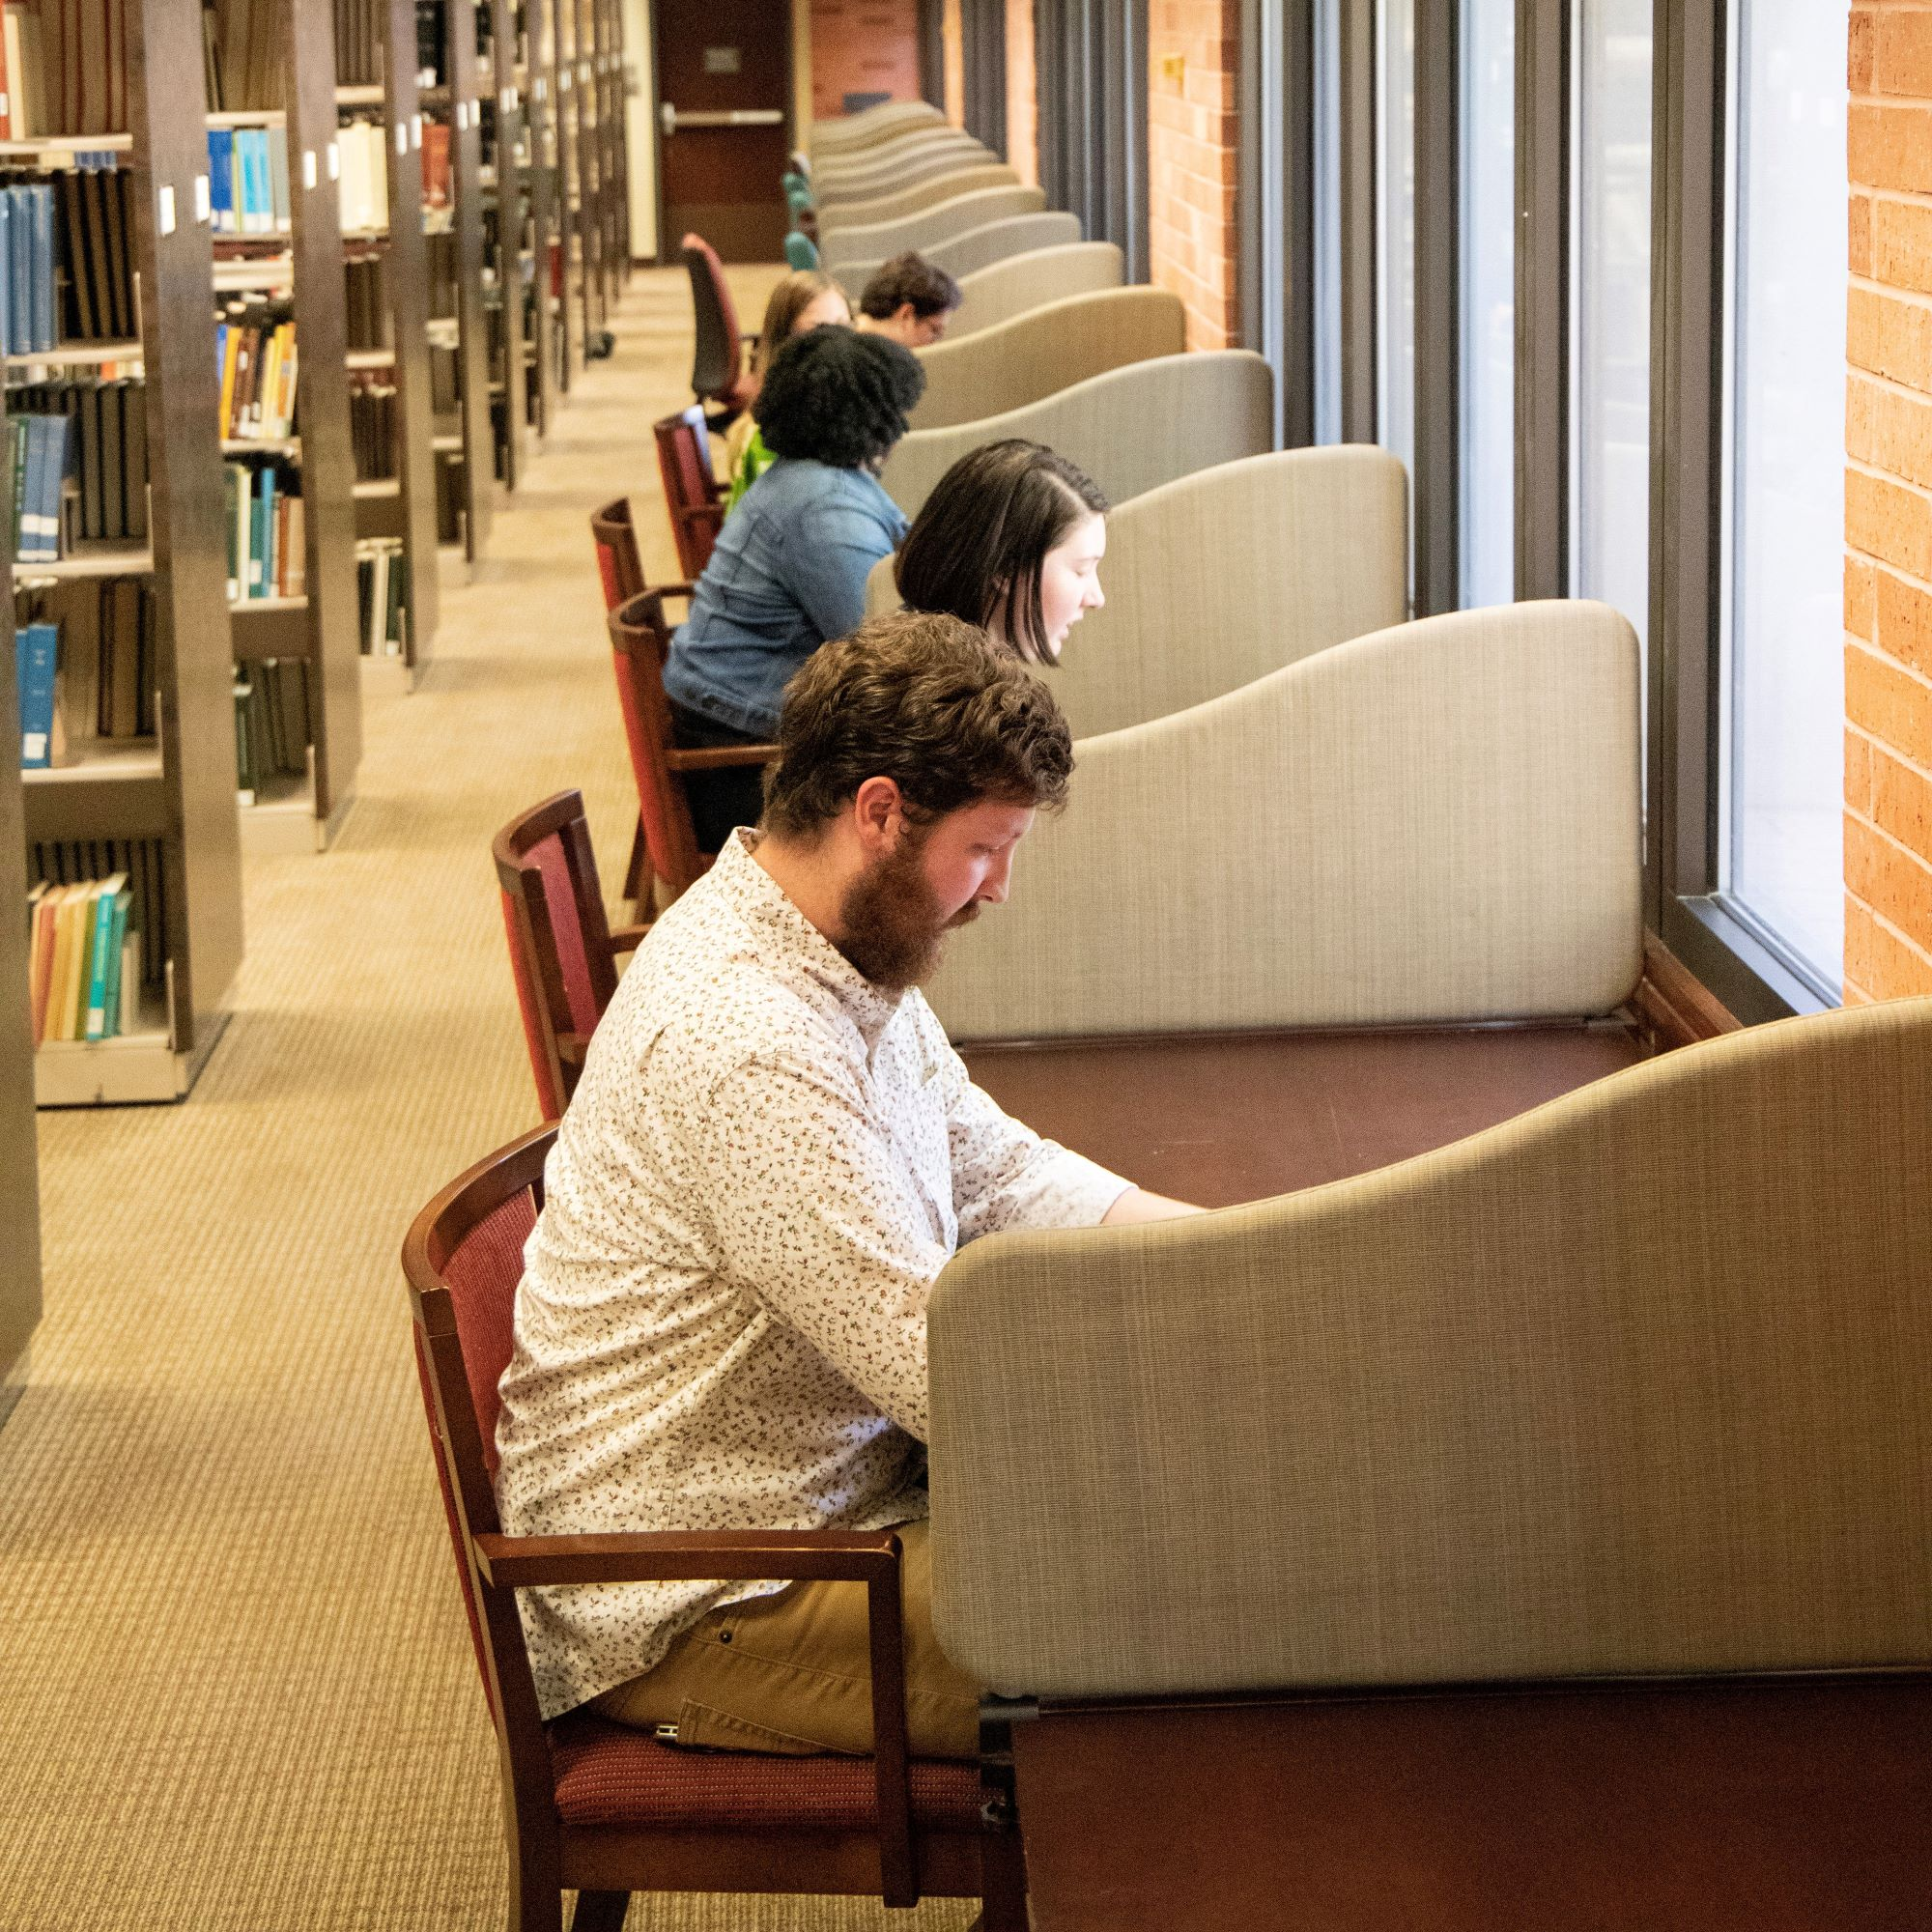 Image of students studying at cubicles.